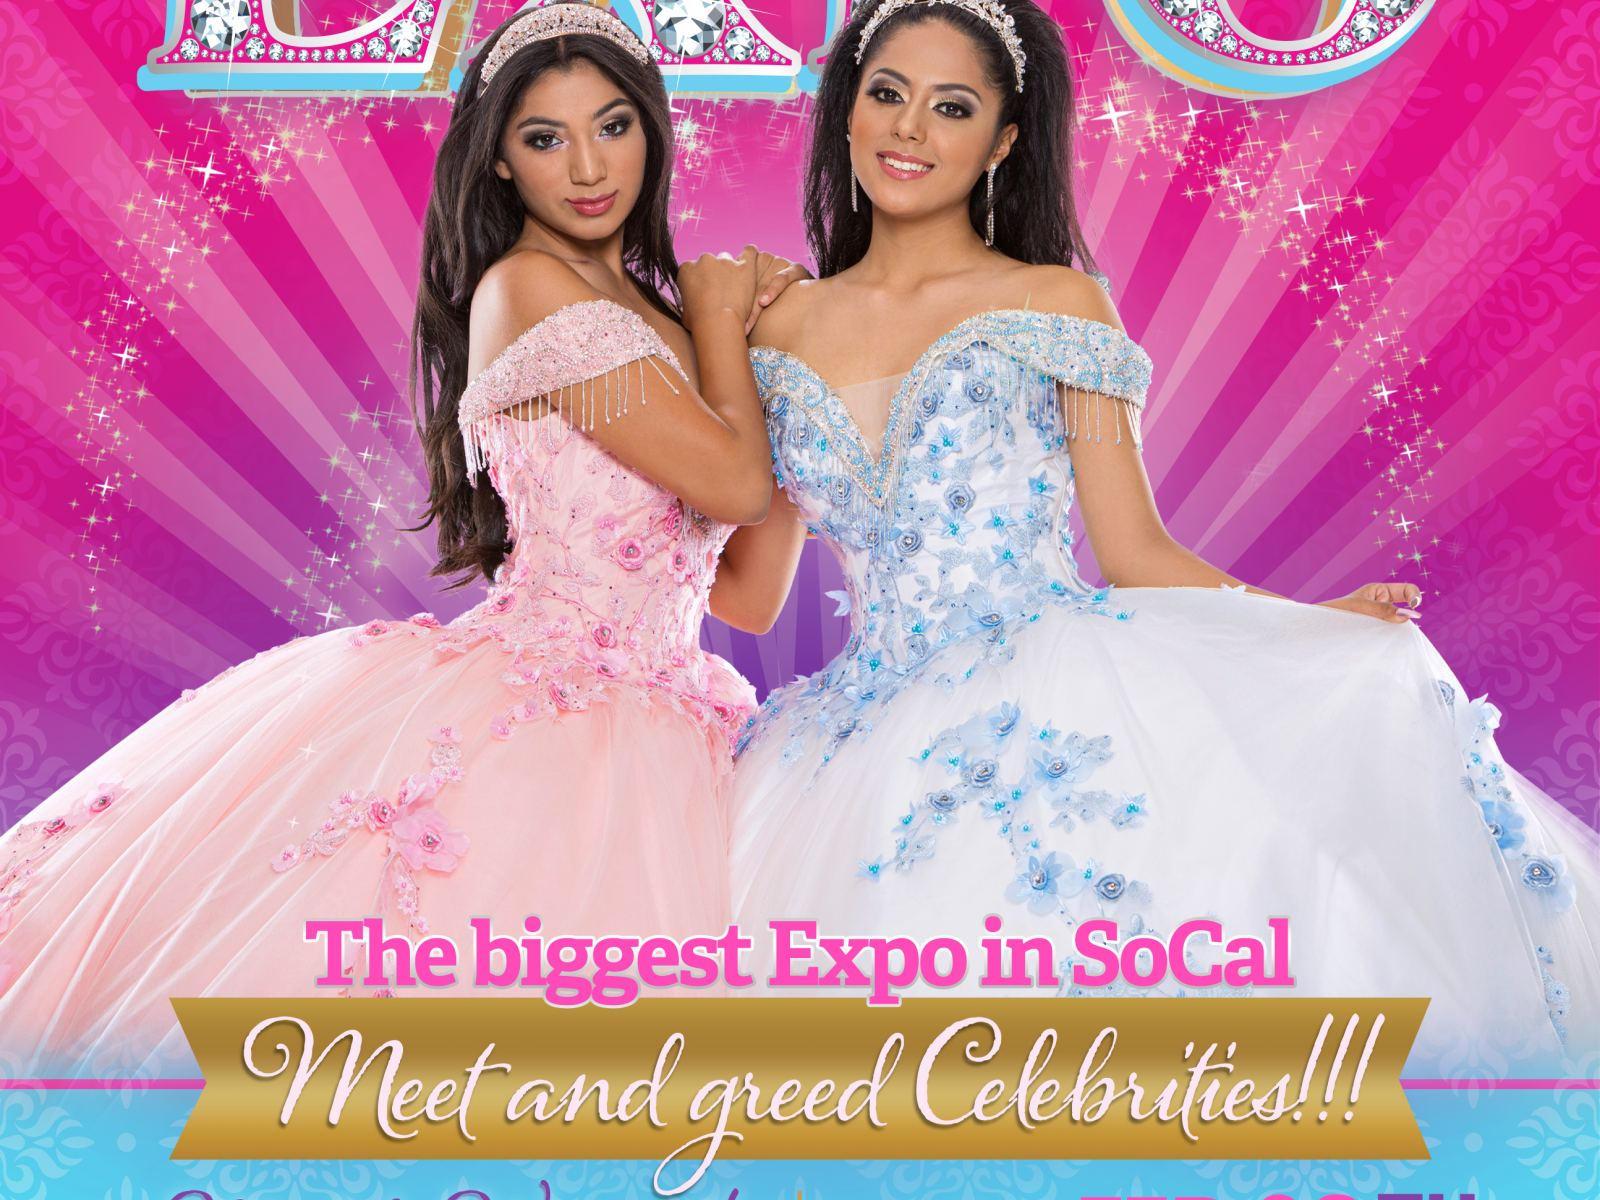 Los Angeles Quinceanera Expo Feb 23, 2020 at Pomona Fairplex